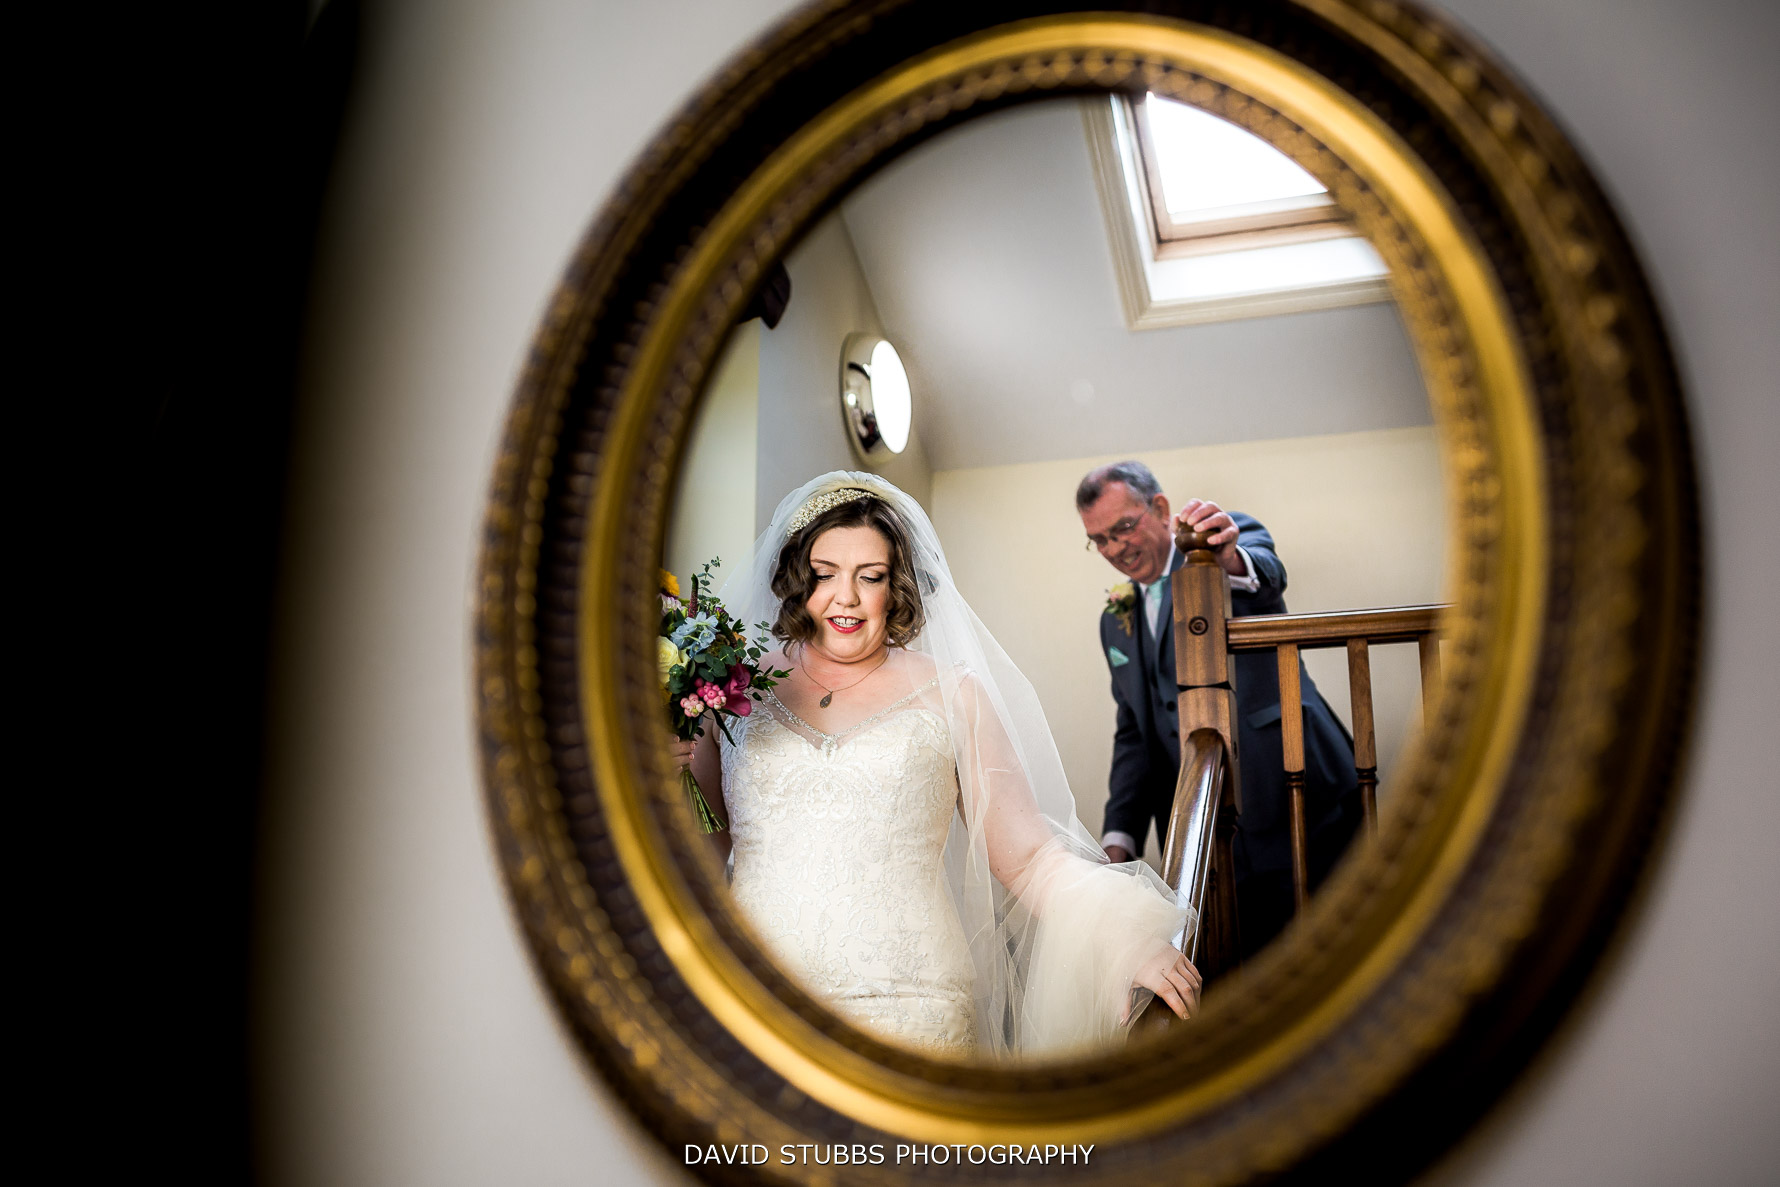 photo of the bride in mirror reflection